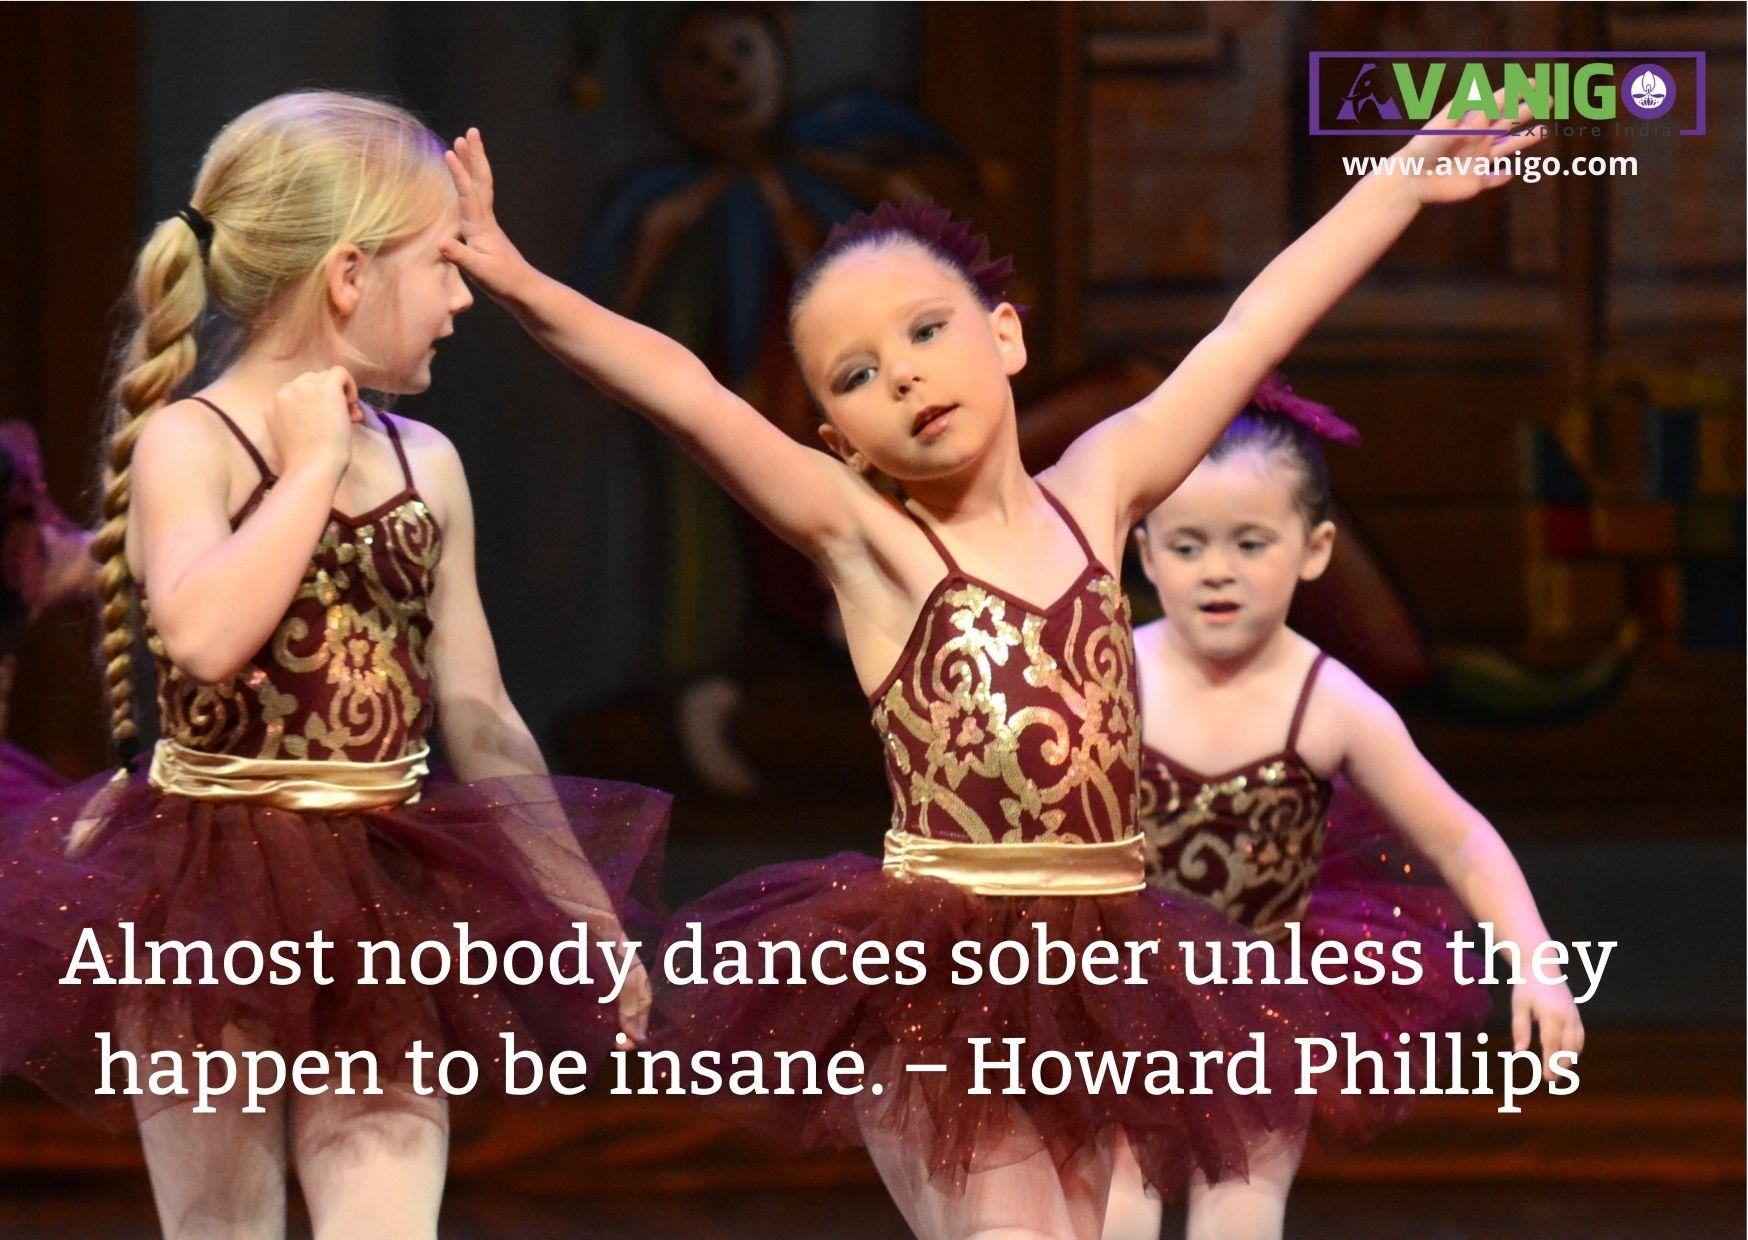 Almost nobody dances sober unless they happen to be insane.